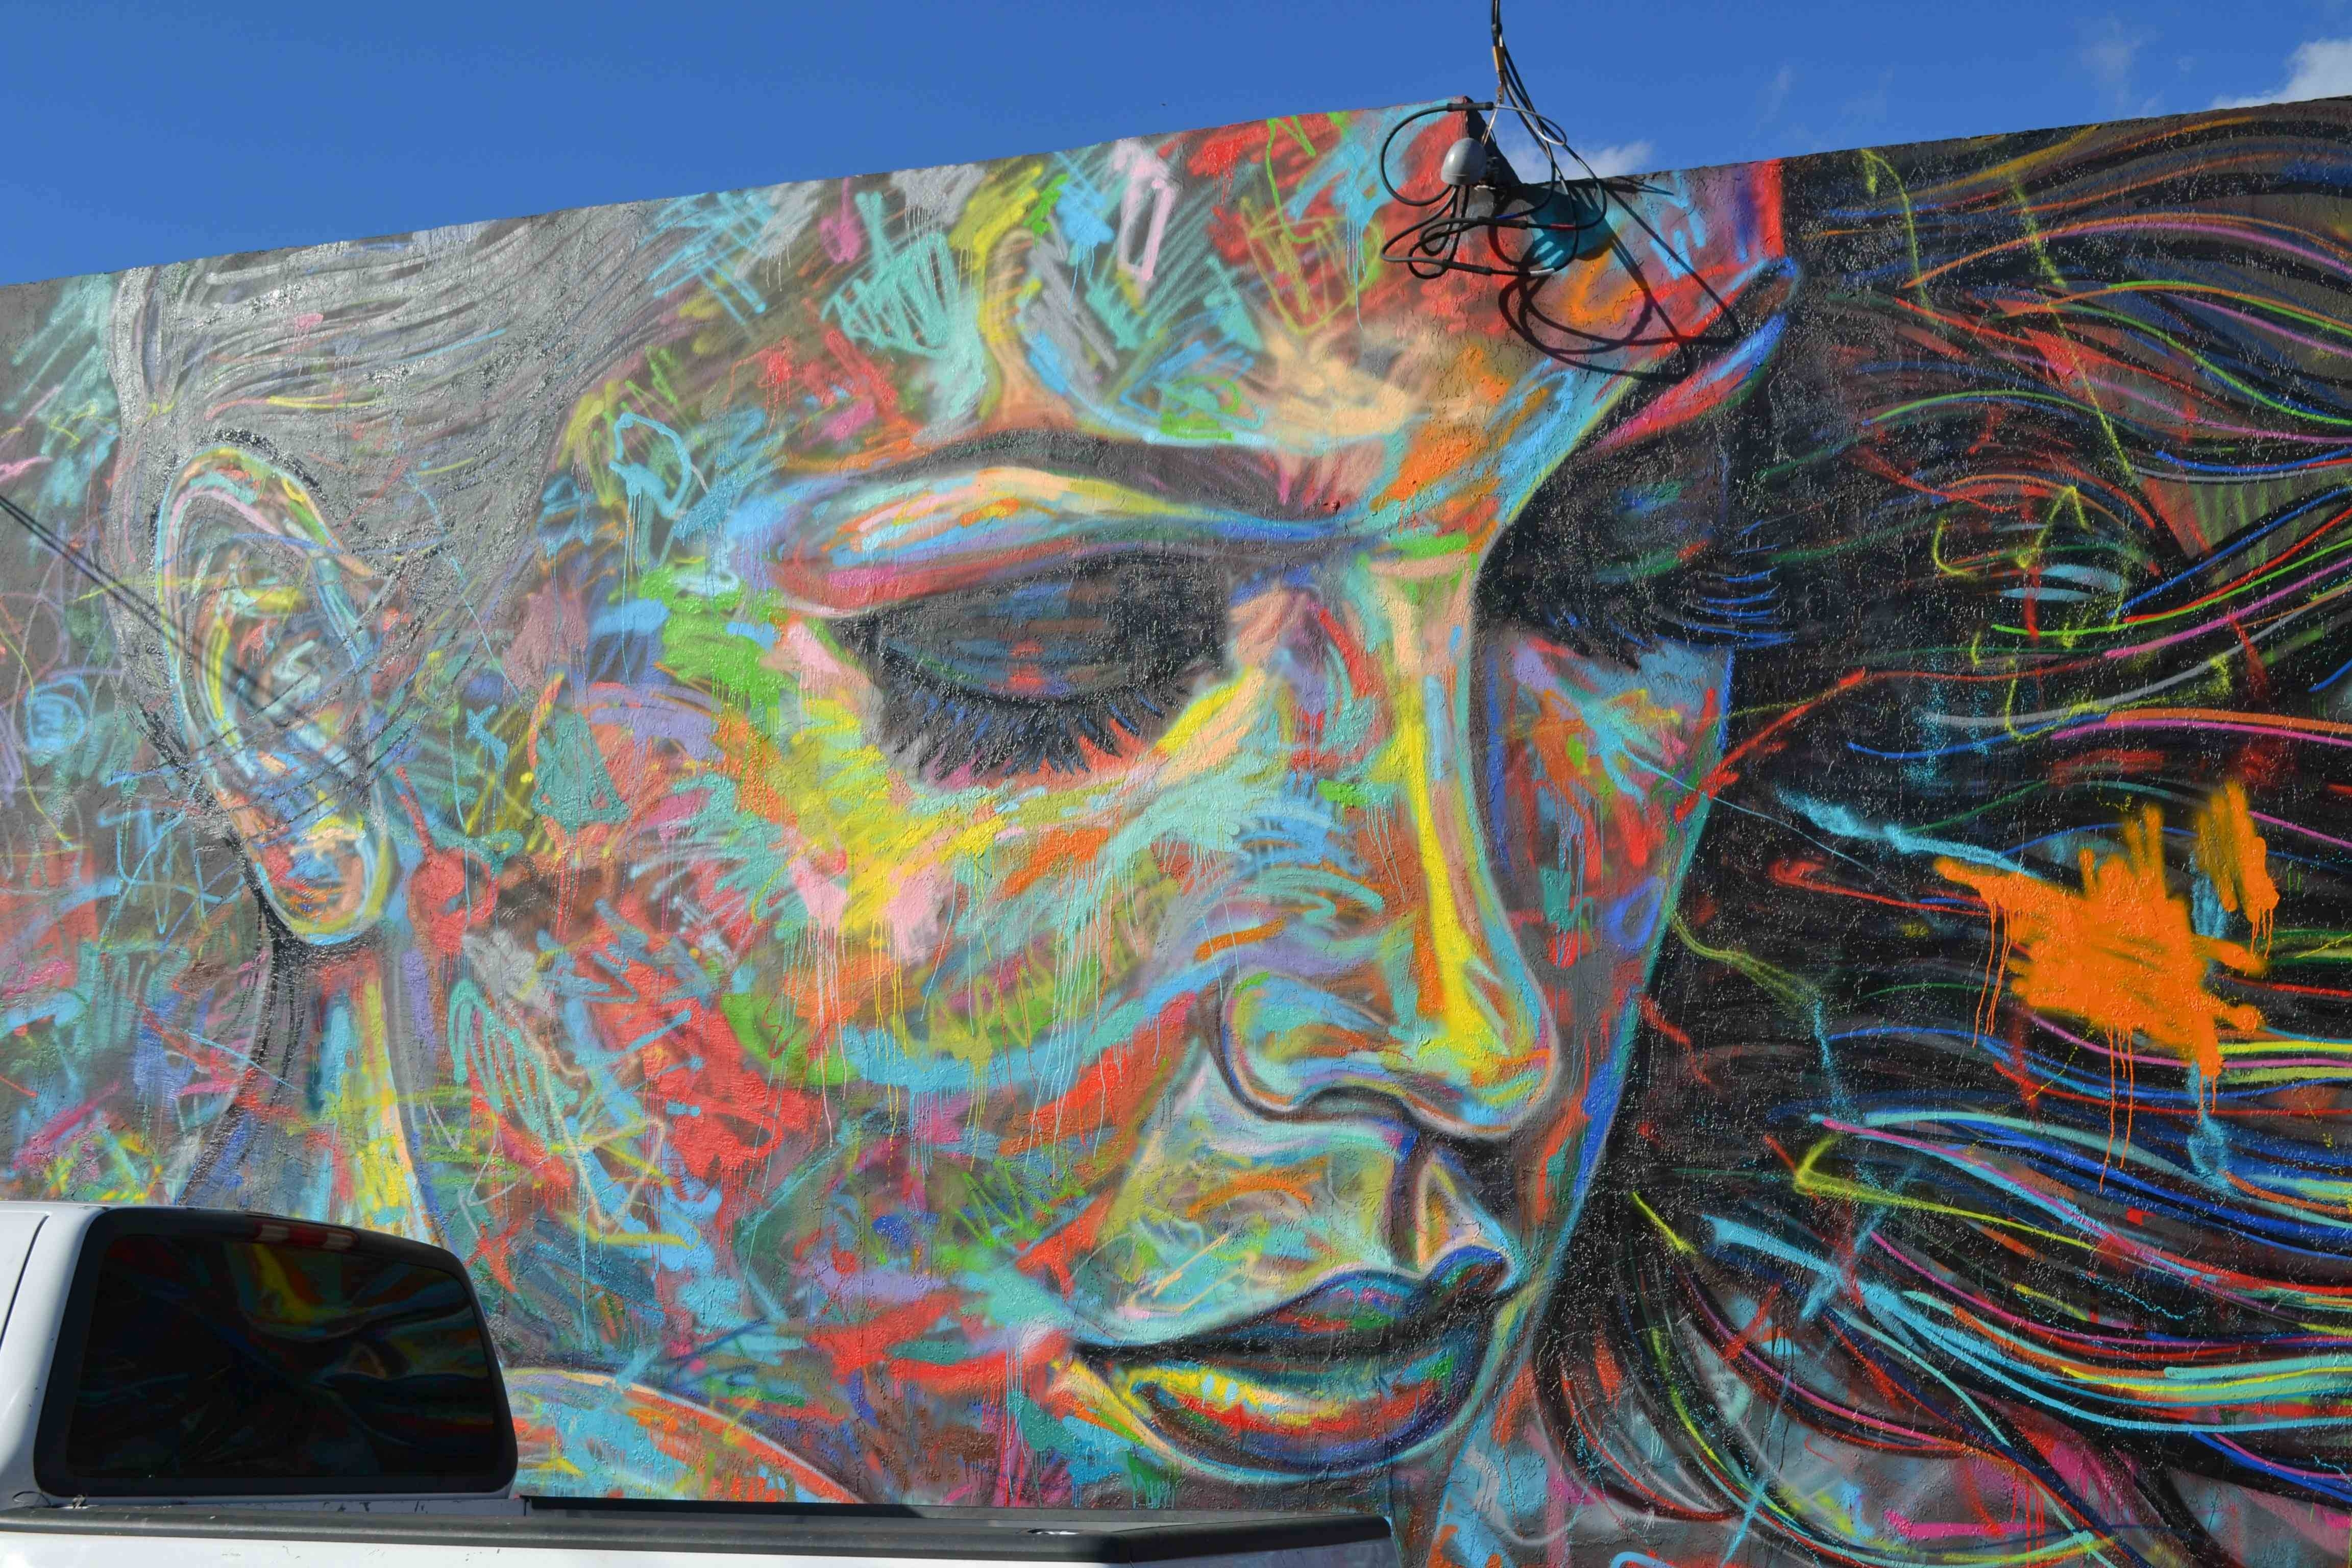 Design: Going Gaga For Graffiti – Design Works Regarding Latest Miami Wall Art (View 17 of 20)